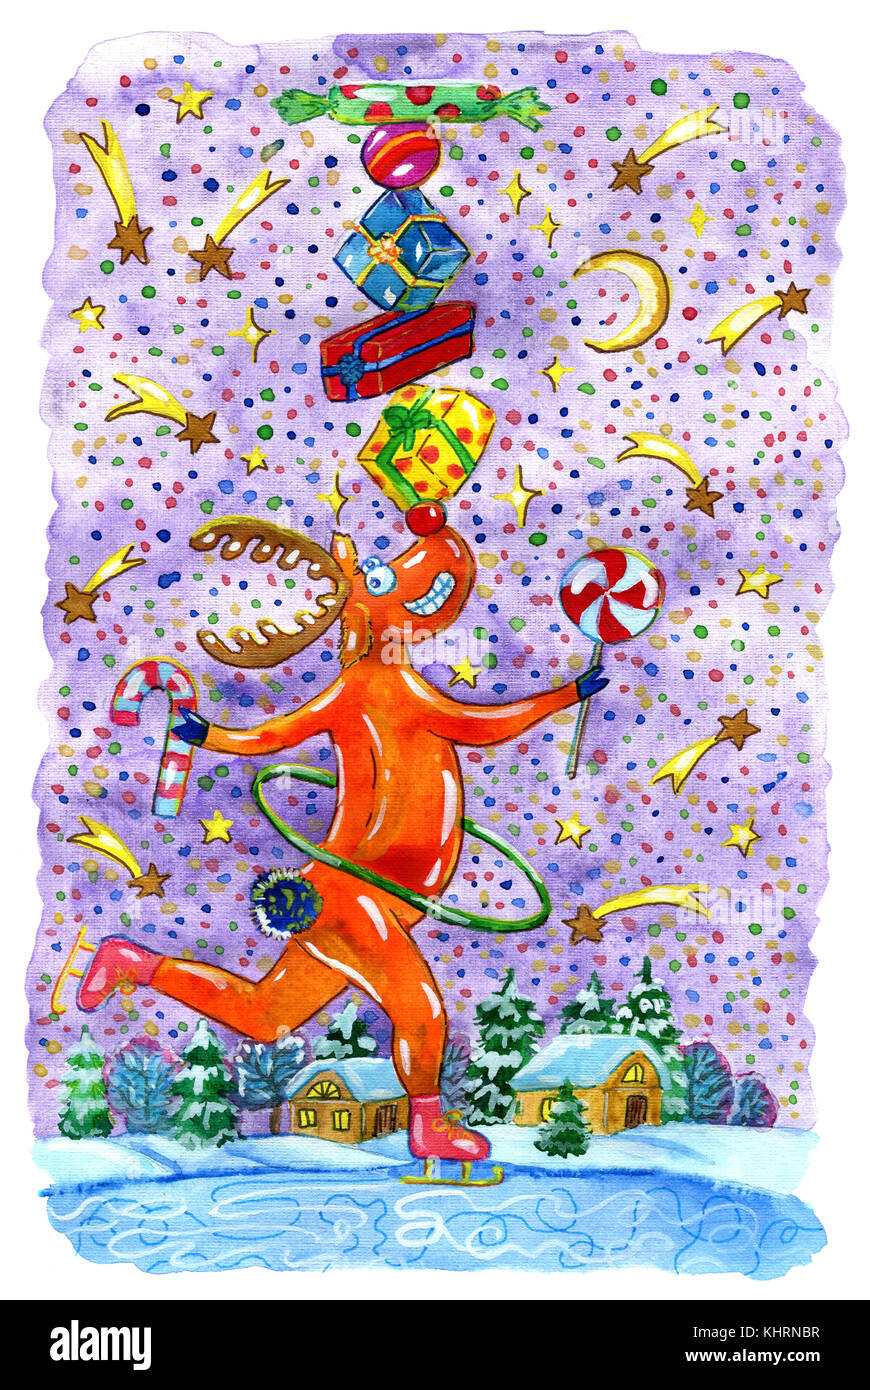 Merry reindeer Rudolph with gifts skating on lake against falling stars, forest and cute houses. Hand drawn illustration - Stock Image